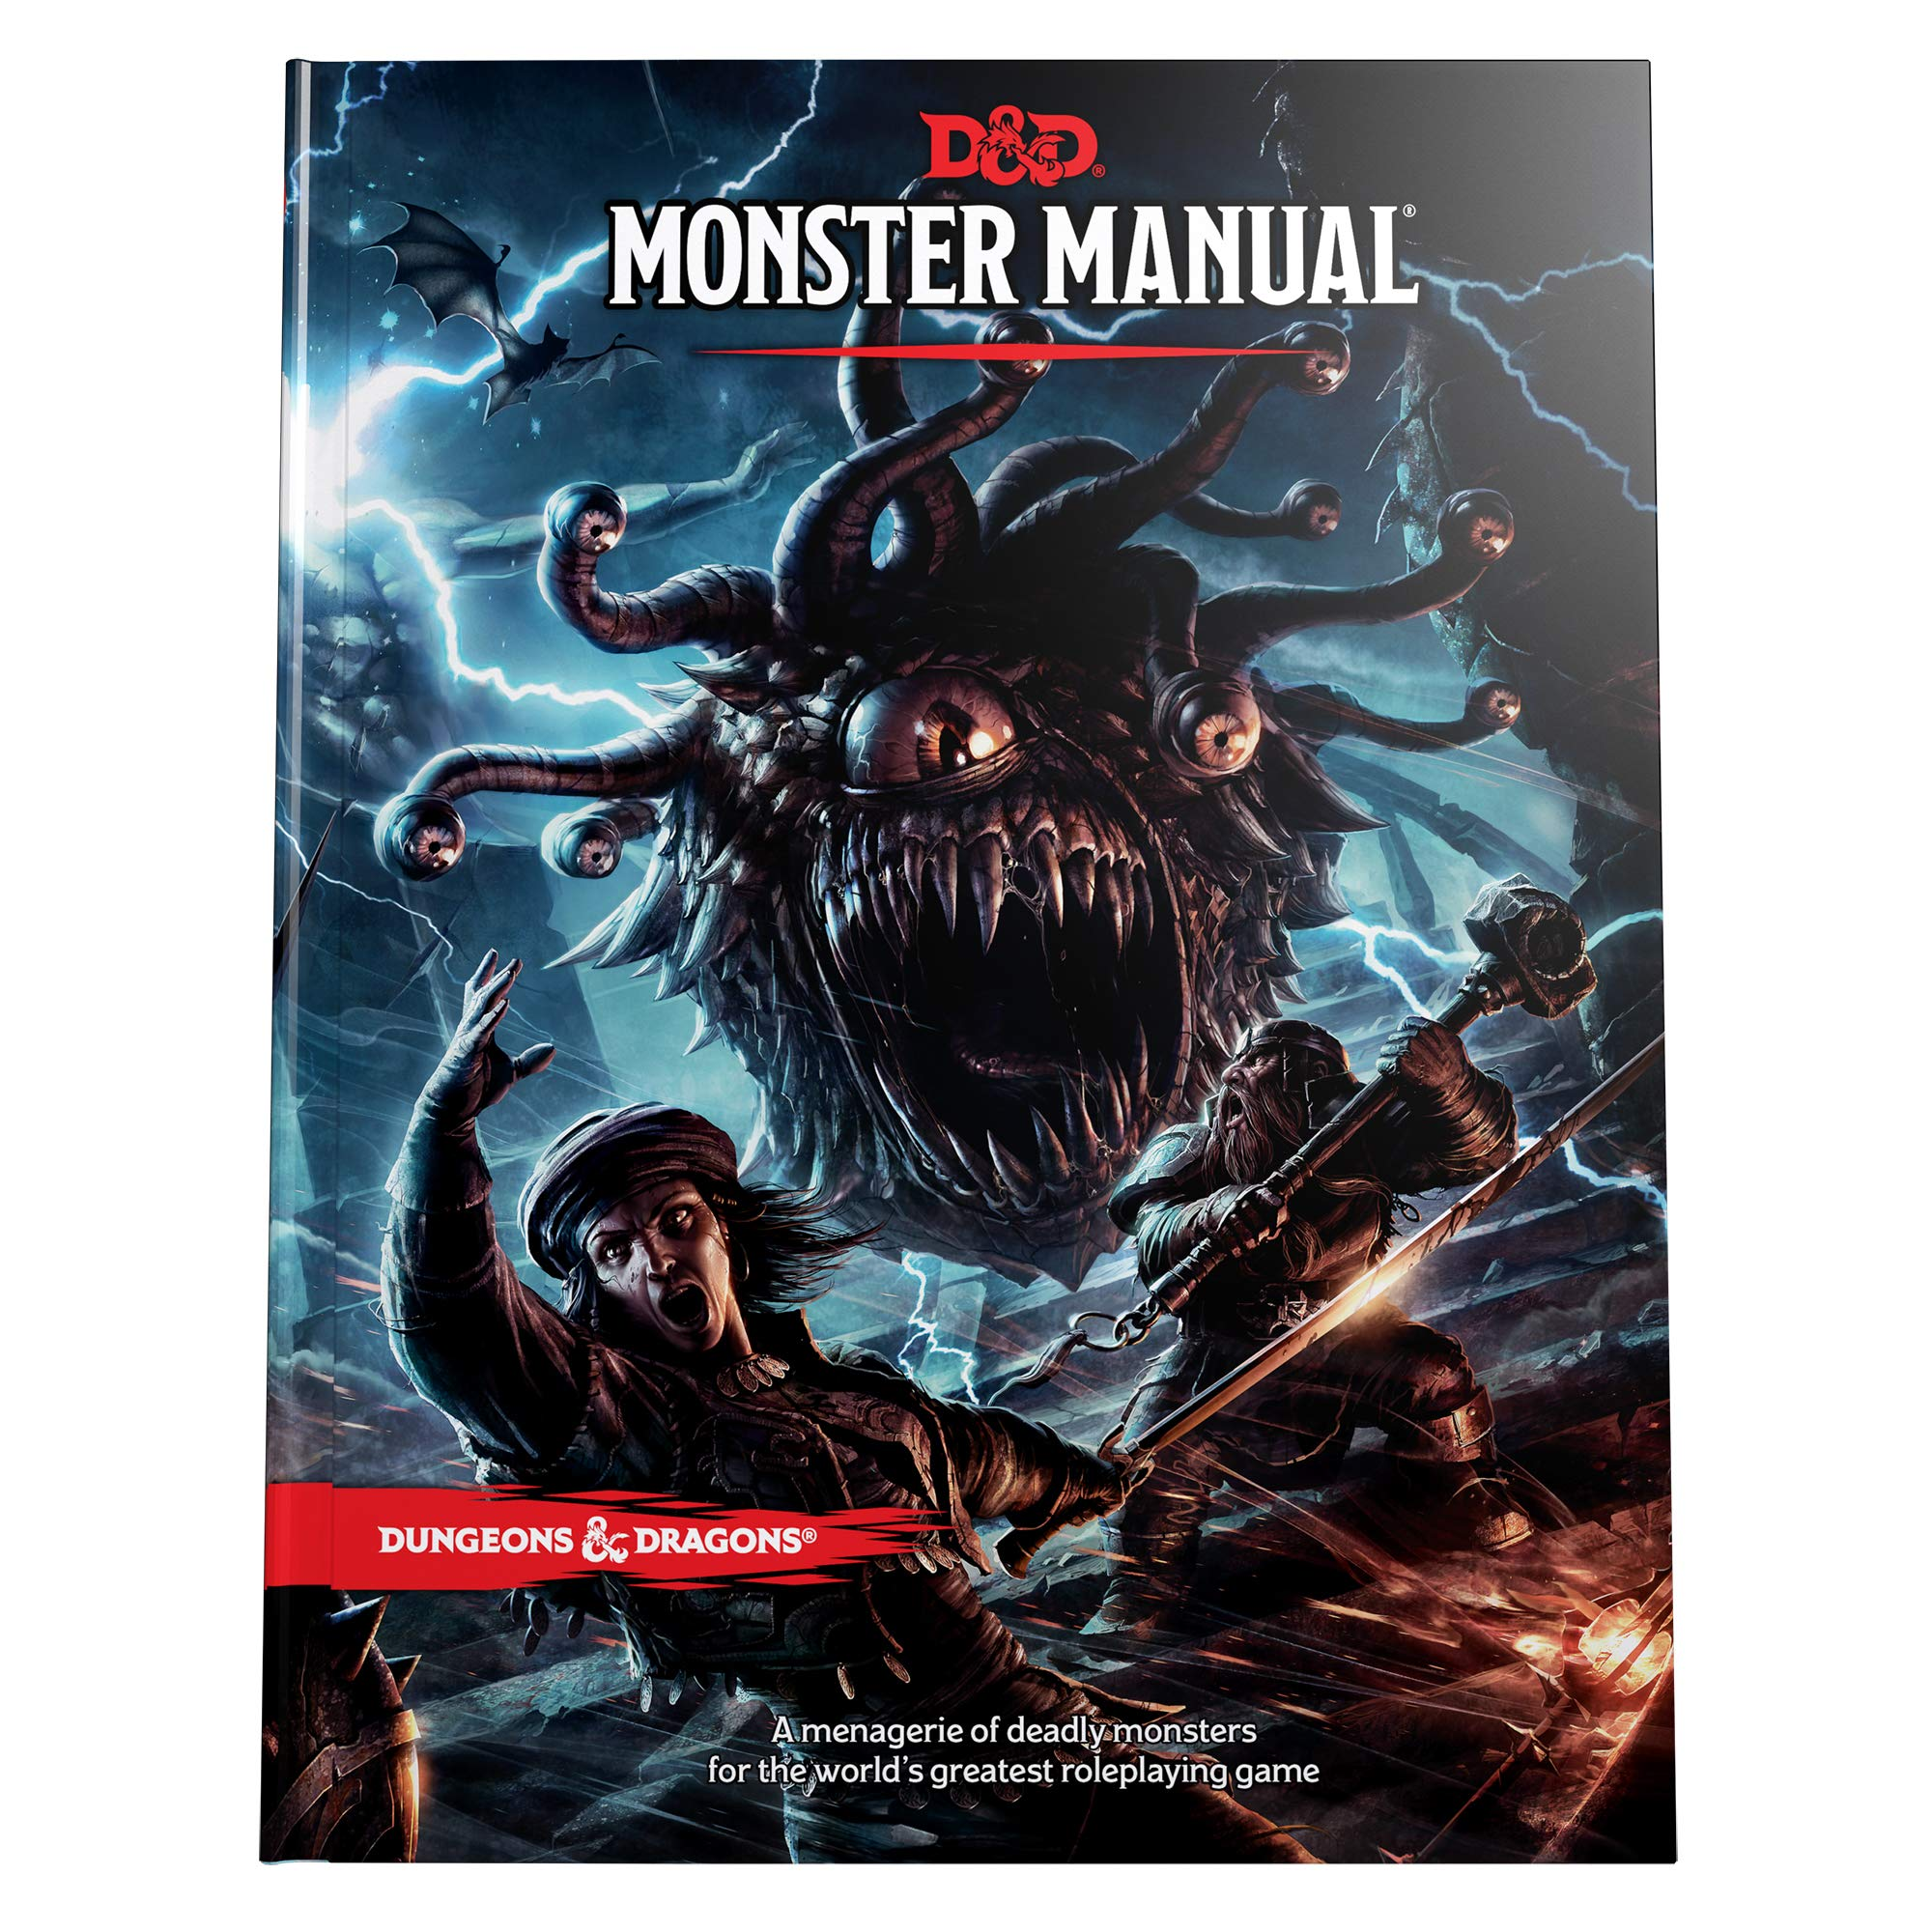 Dungeons & Dragons Monster Manual (Core Rulebook, D&D Roleplaying Game) (D&D  Core Rulebook): Wizards RPG Team: 8601410683740: Amazon.com: Books